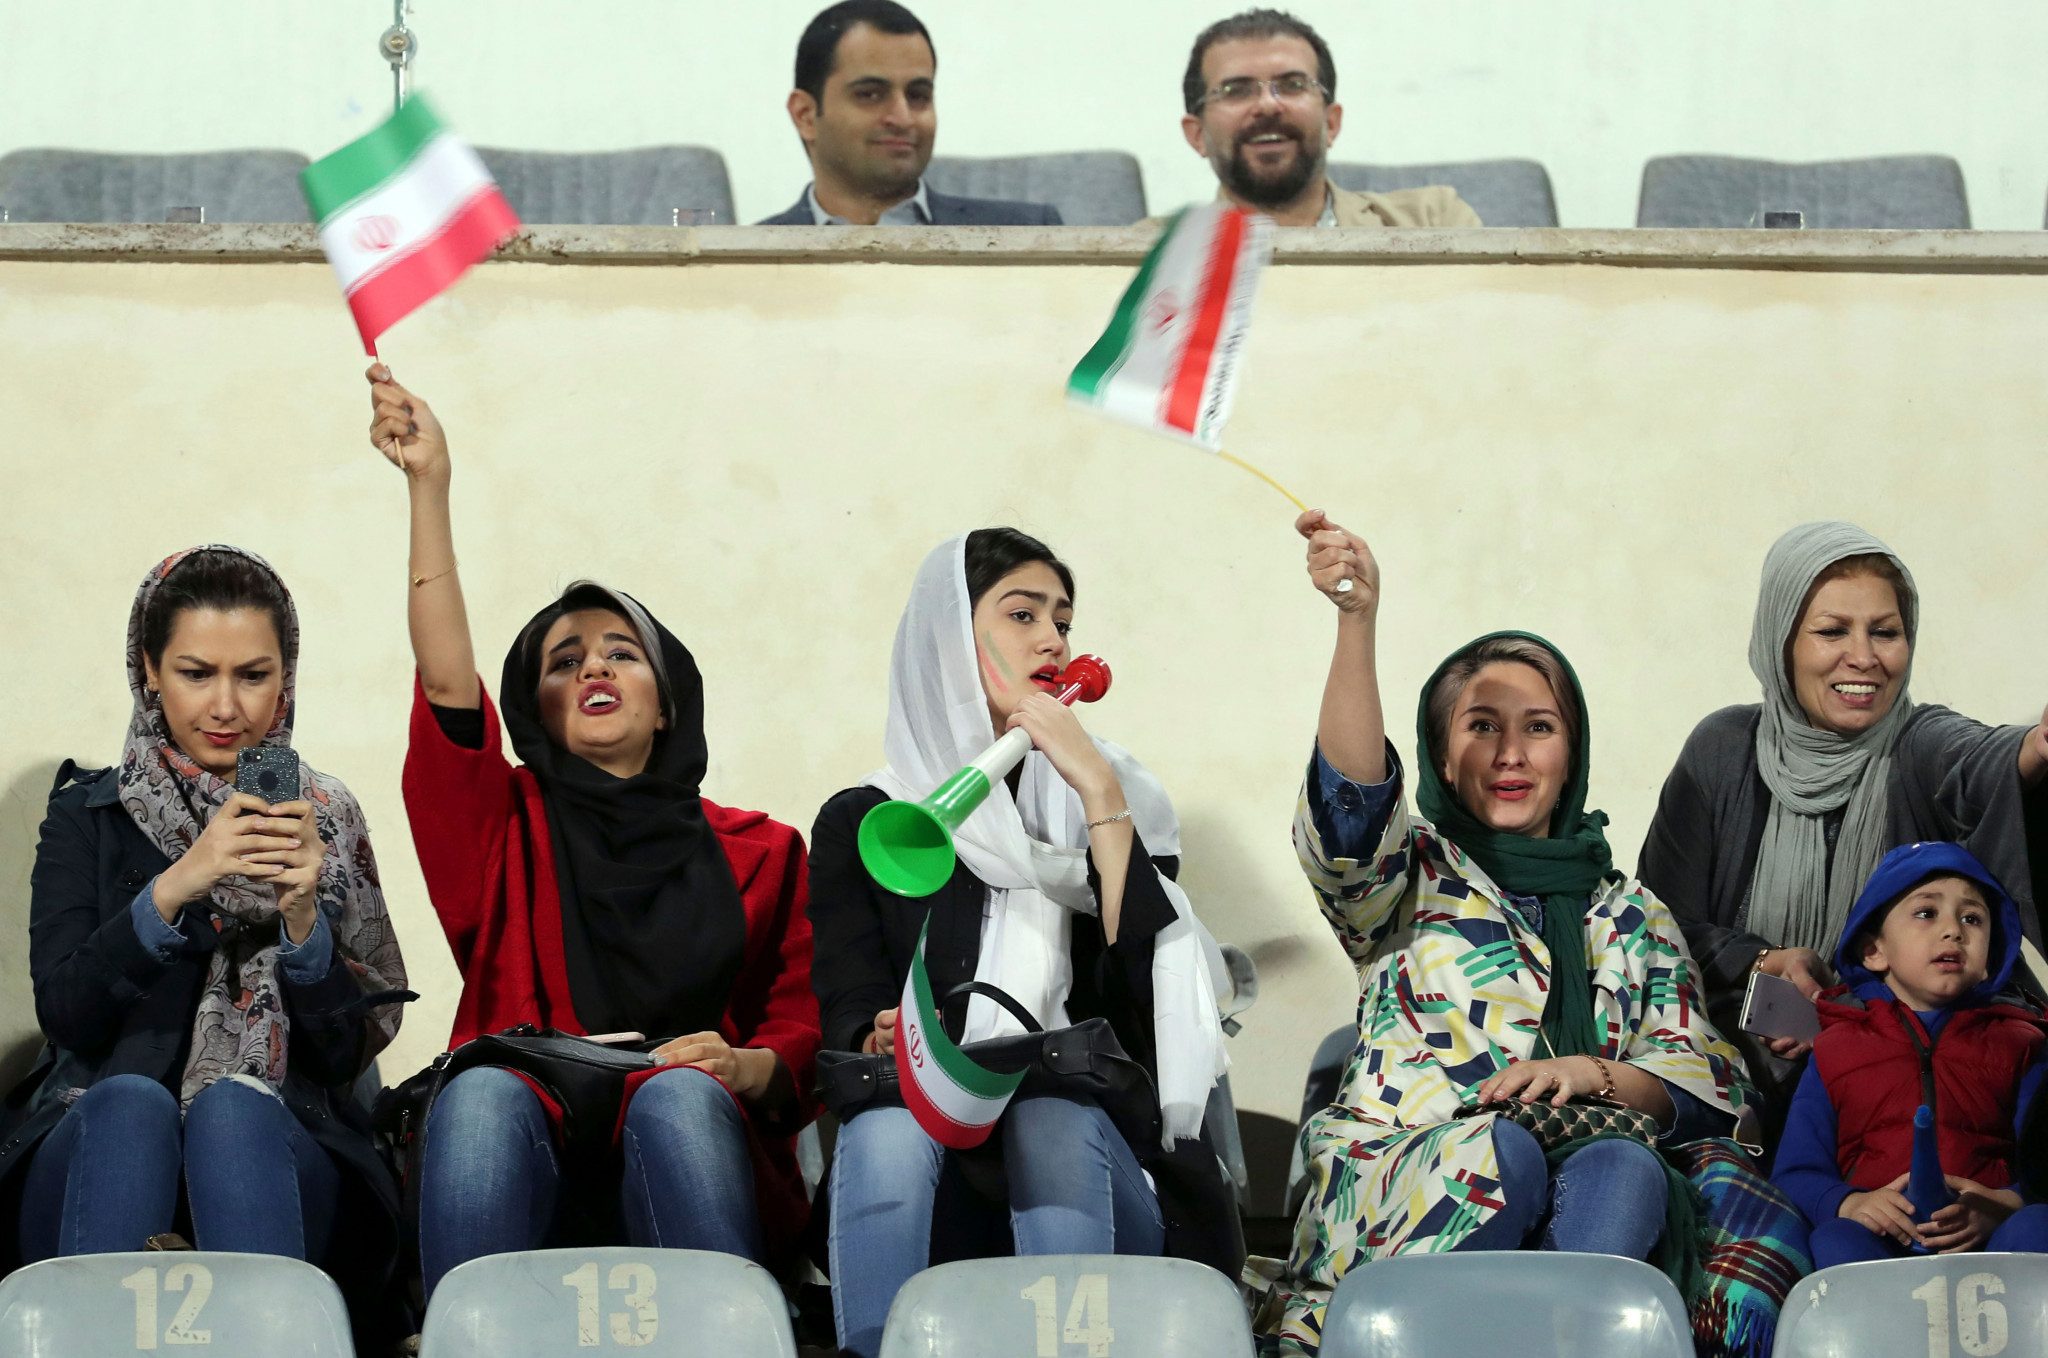 Iran to allow women to watch 2022 FIFA World Cup qualifier in October, report says